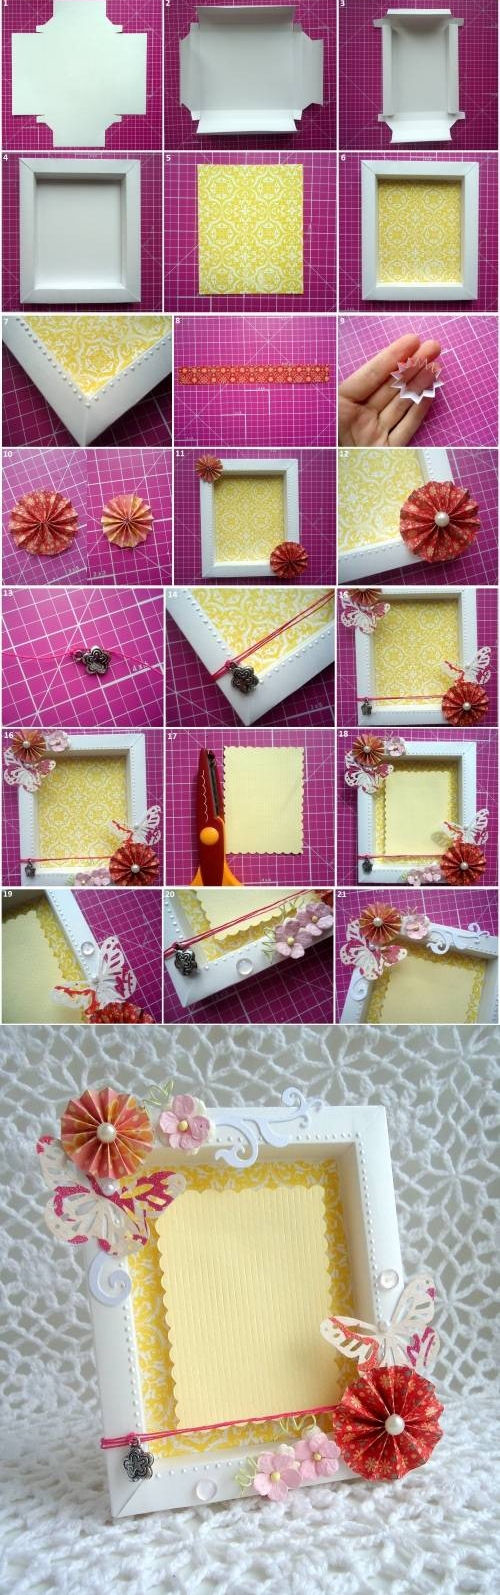 DIY Picture Frames Pictures, Photos, and Images for ...